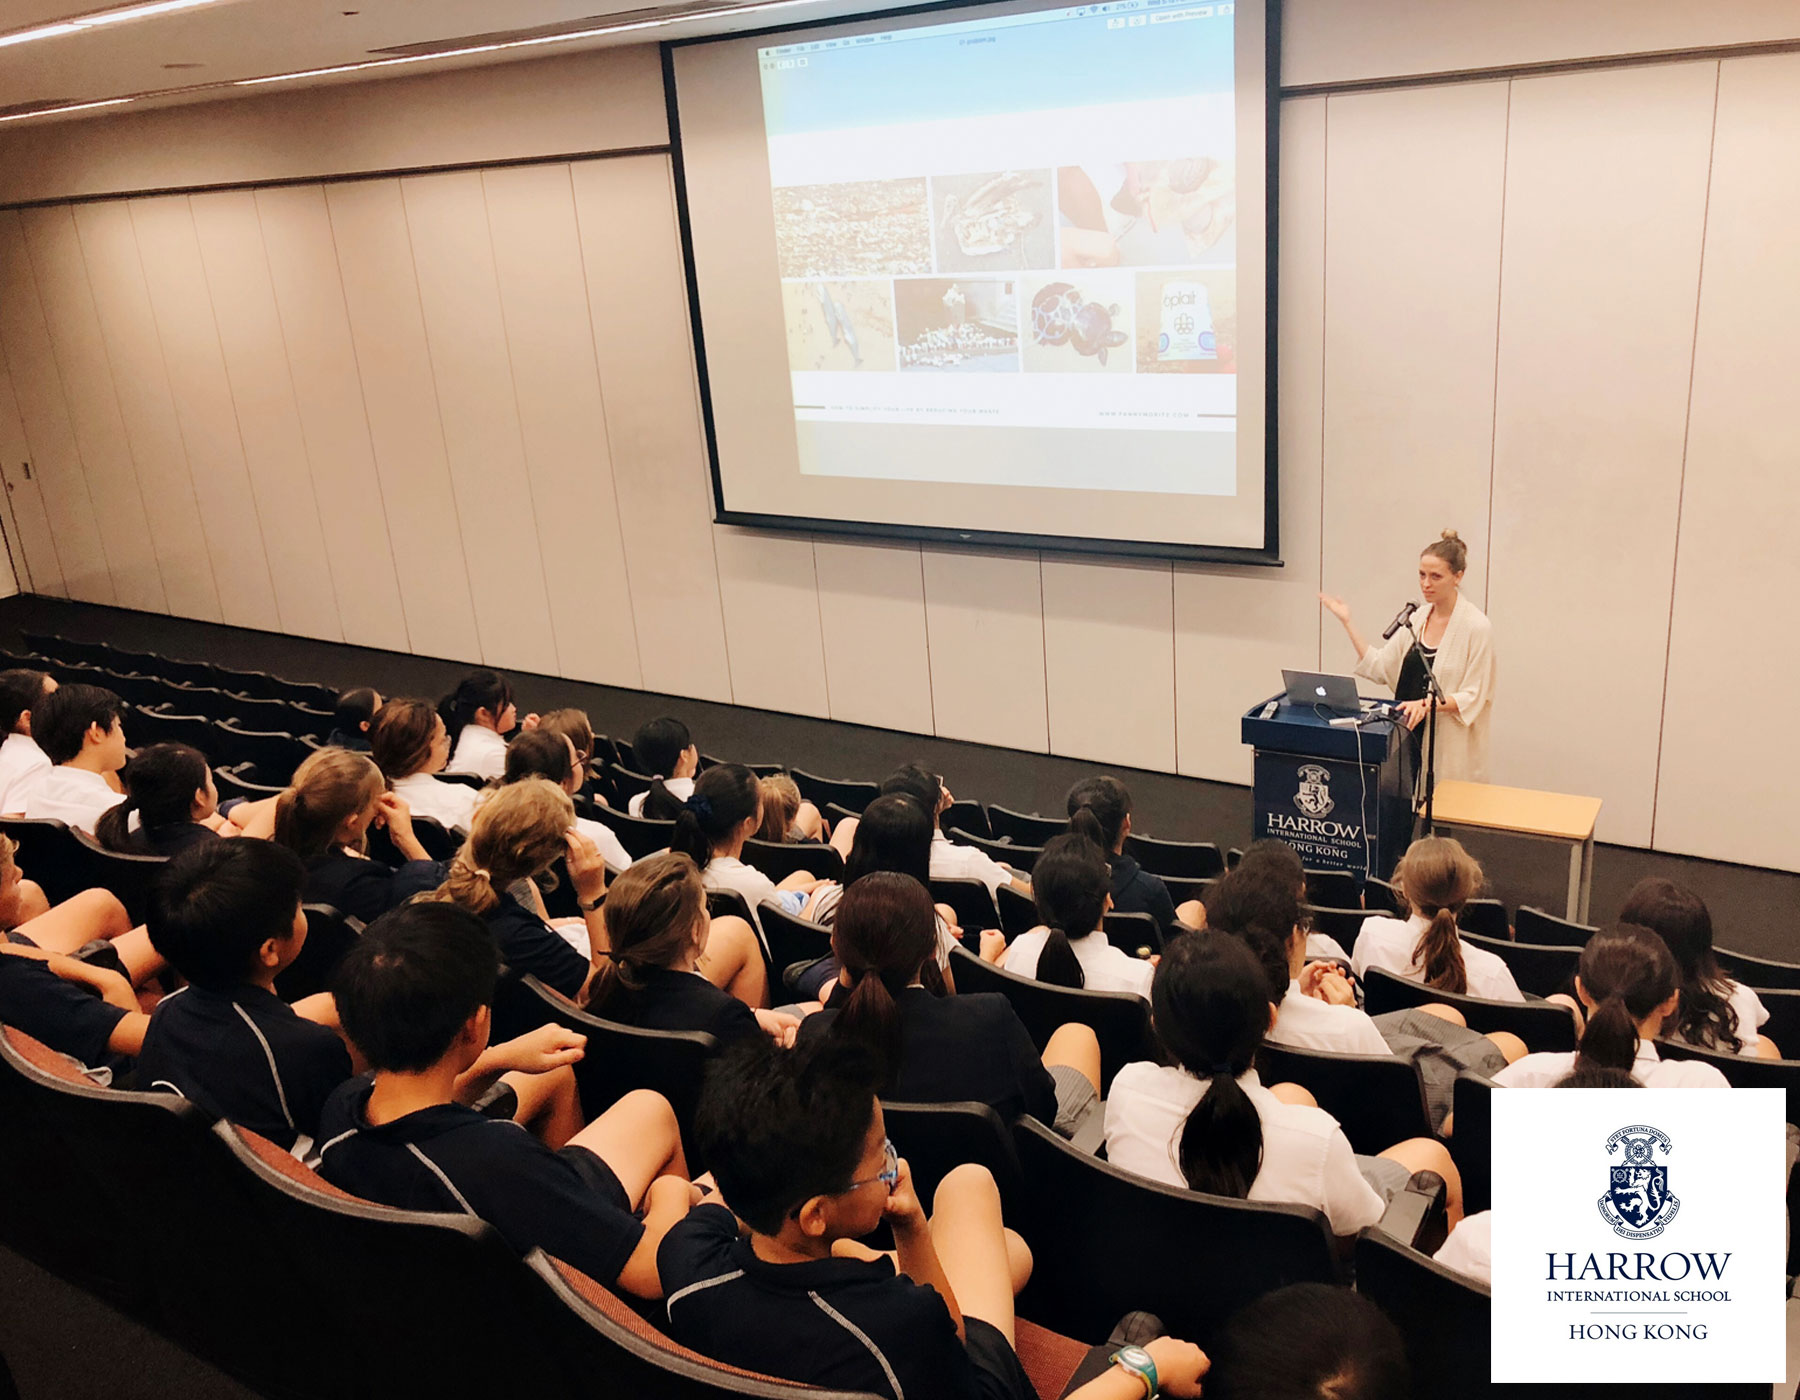 Talk about Zero Waste and sustainability at Harrow School - Hong Kong - October 2018